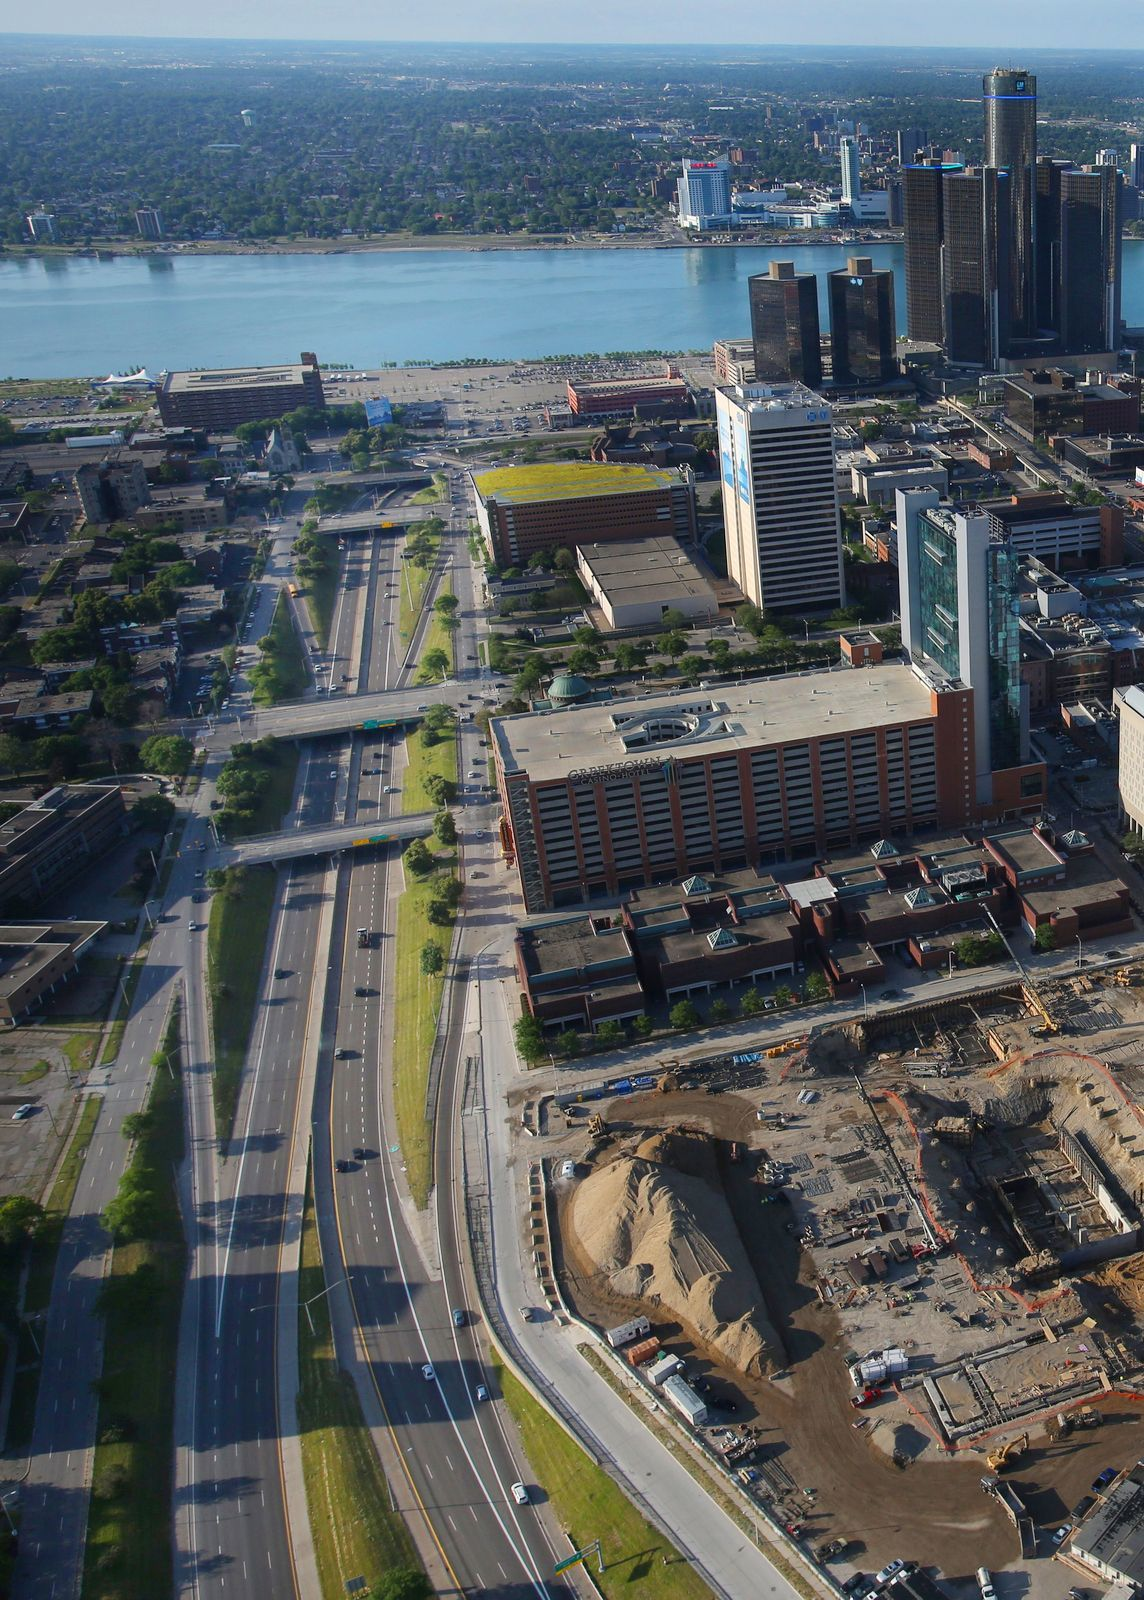 Officials have long weighed plans to rip out Detroit's I-375 expressway and restore a surface street there.